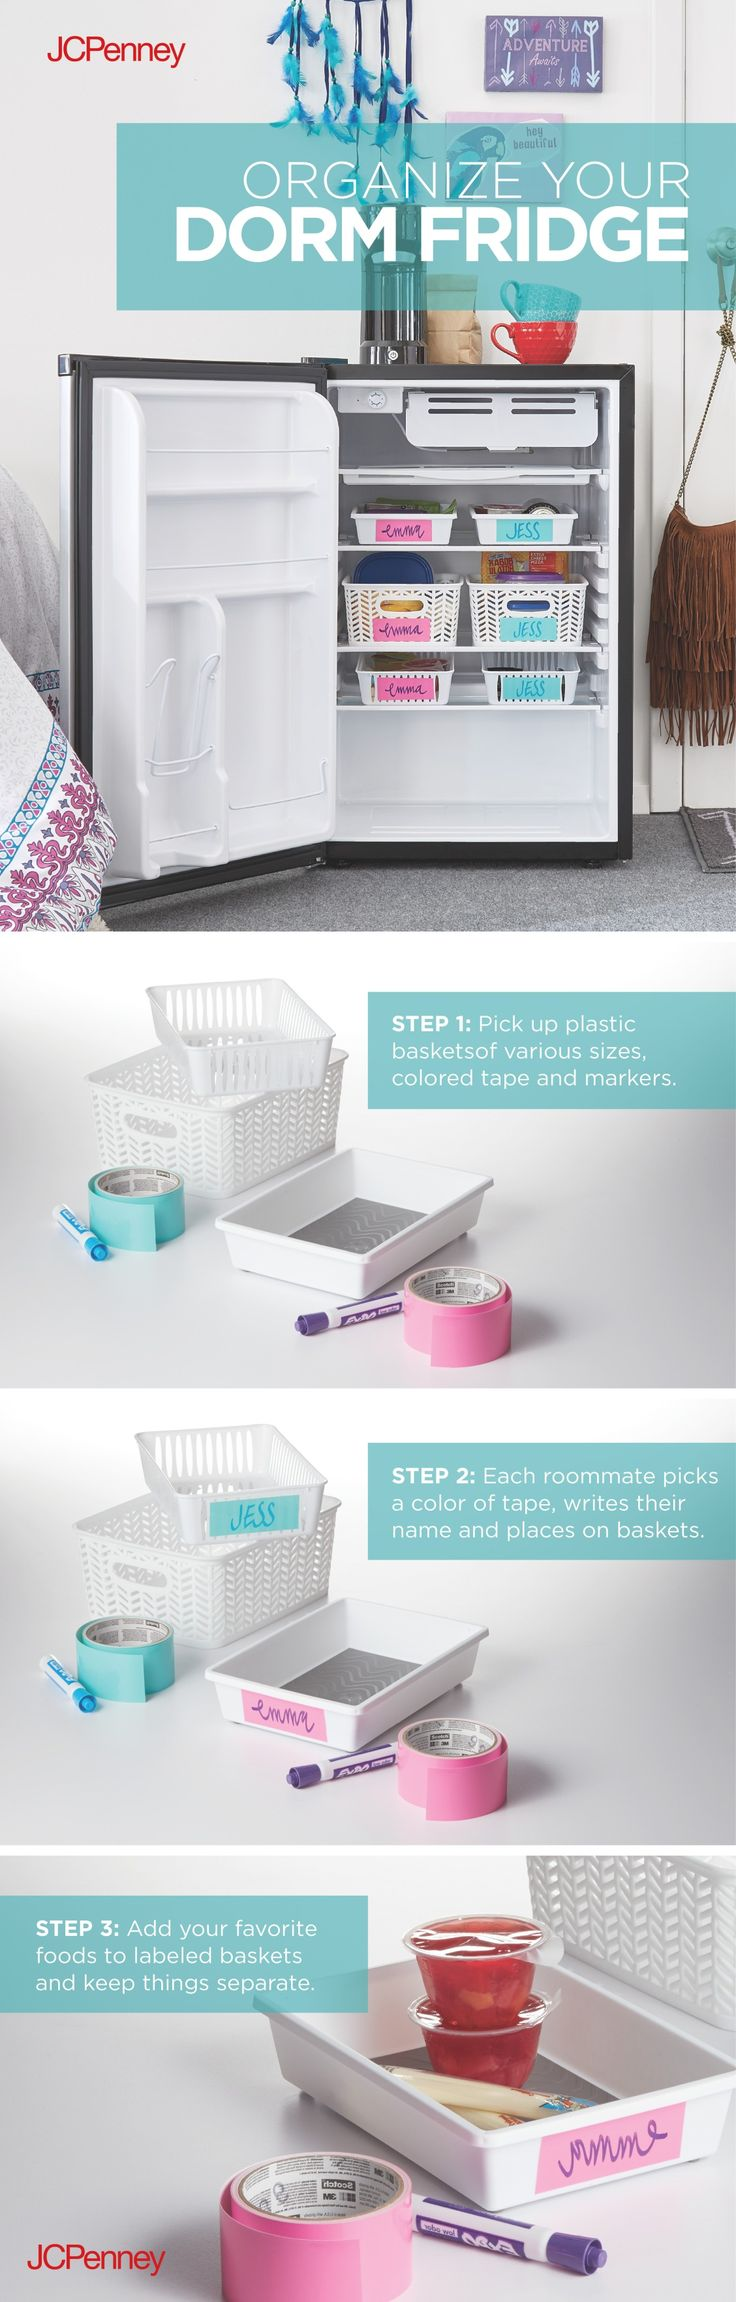 Organize your dorm fridge in 3 easy steps. Keep thing separate in your dorm fridge with simple organizing tips. Find these ideas and items at JCPenney!